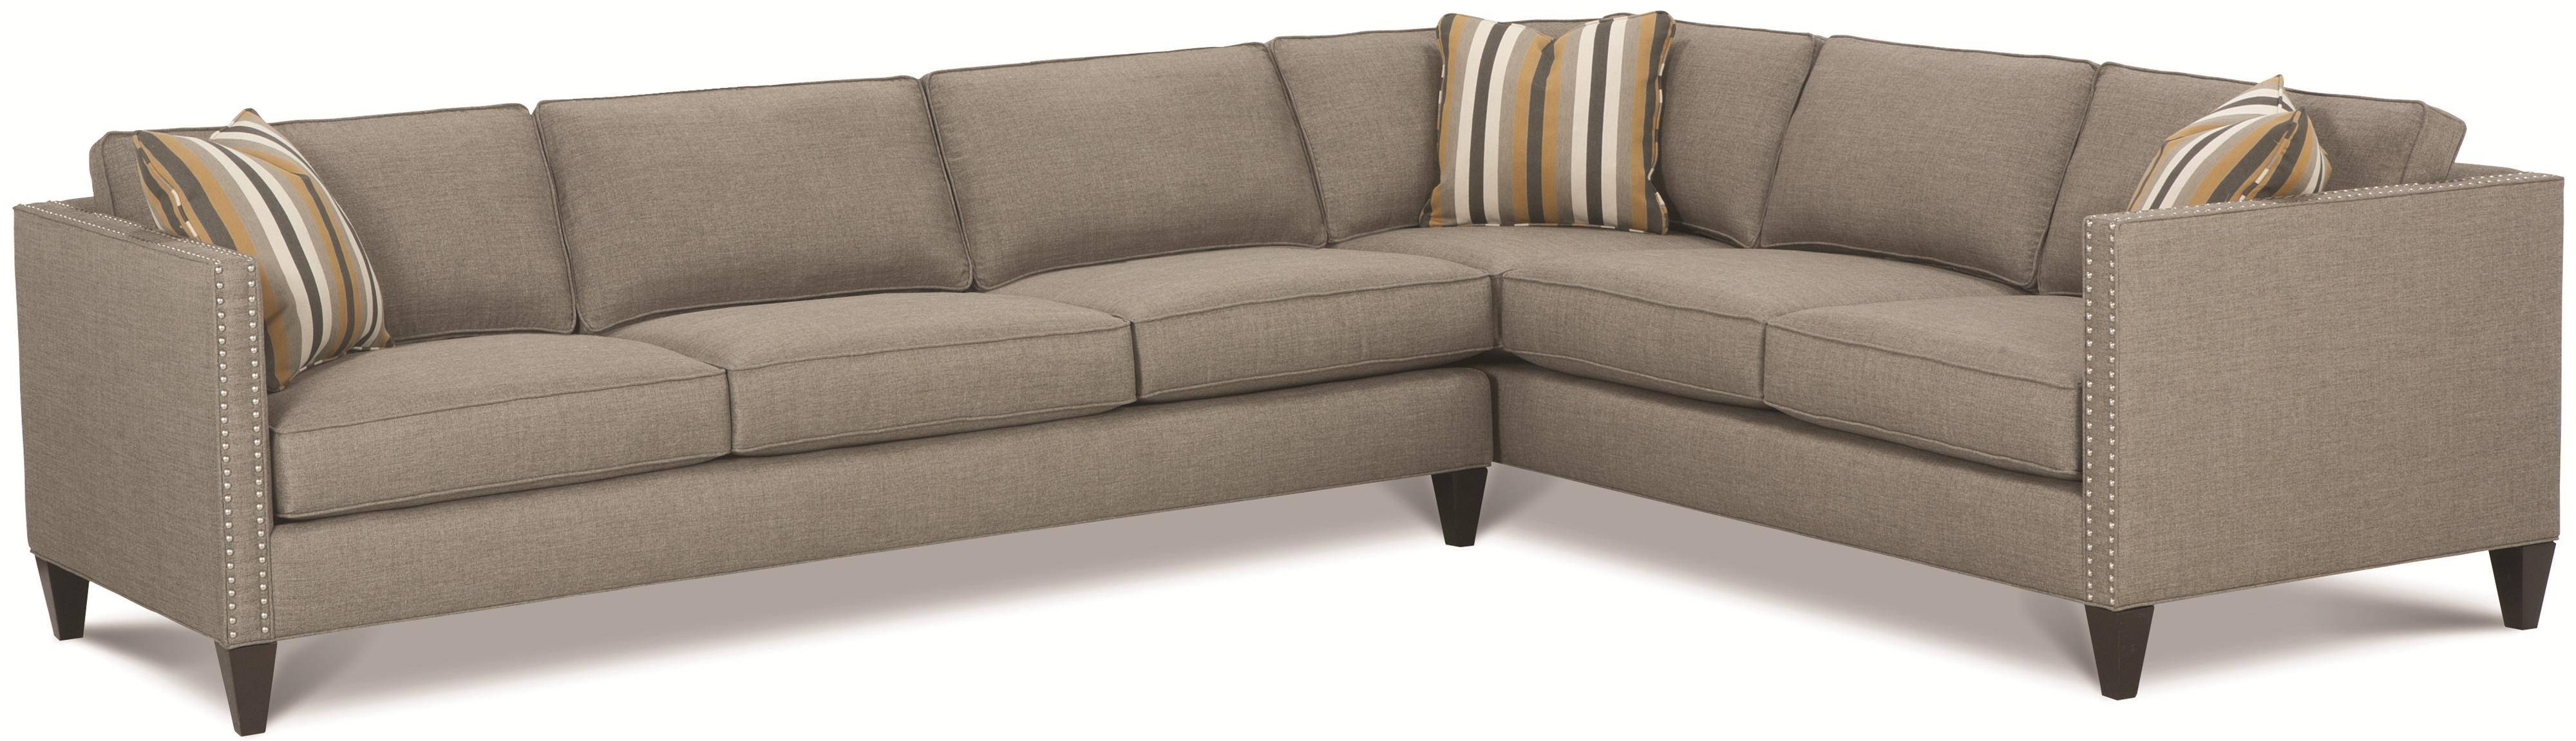 Rowe Sectional Sofas Rowe Mitc Rxo B Customizable Contemporary With Regard  To Rowe Sectional Sofas (